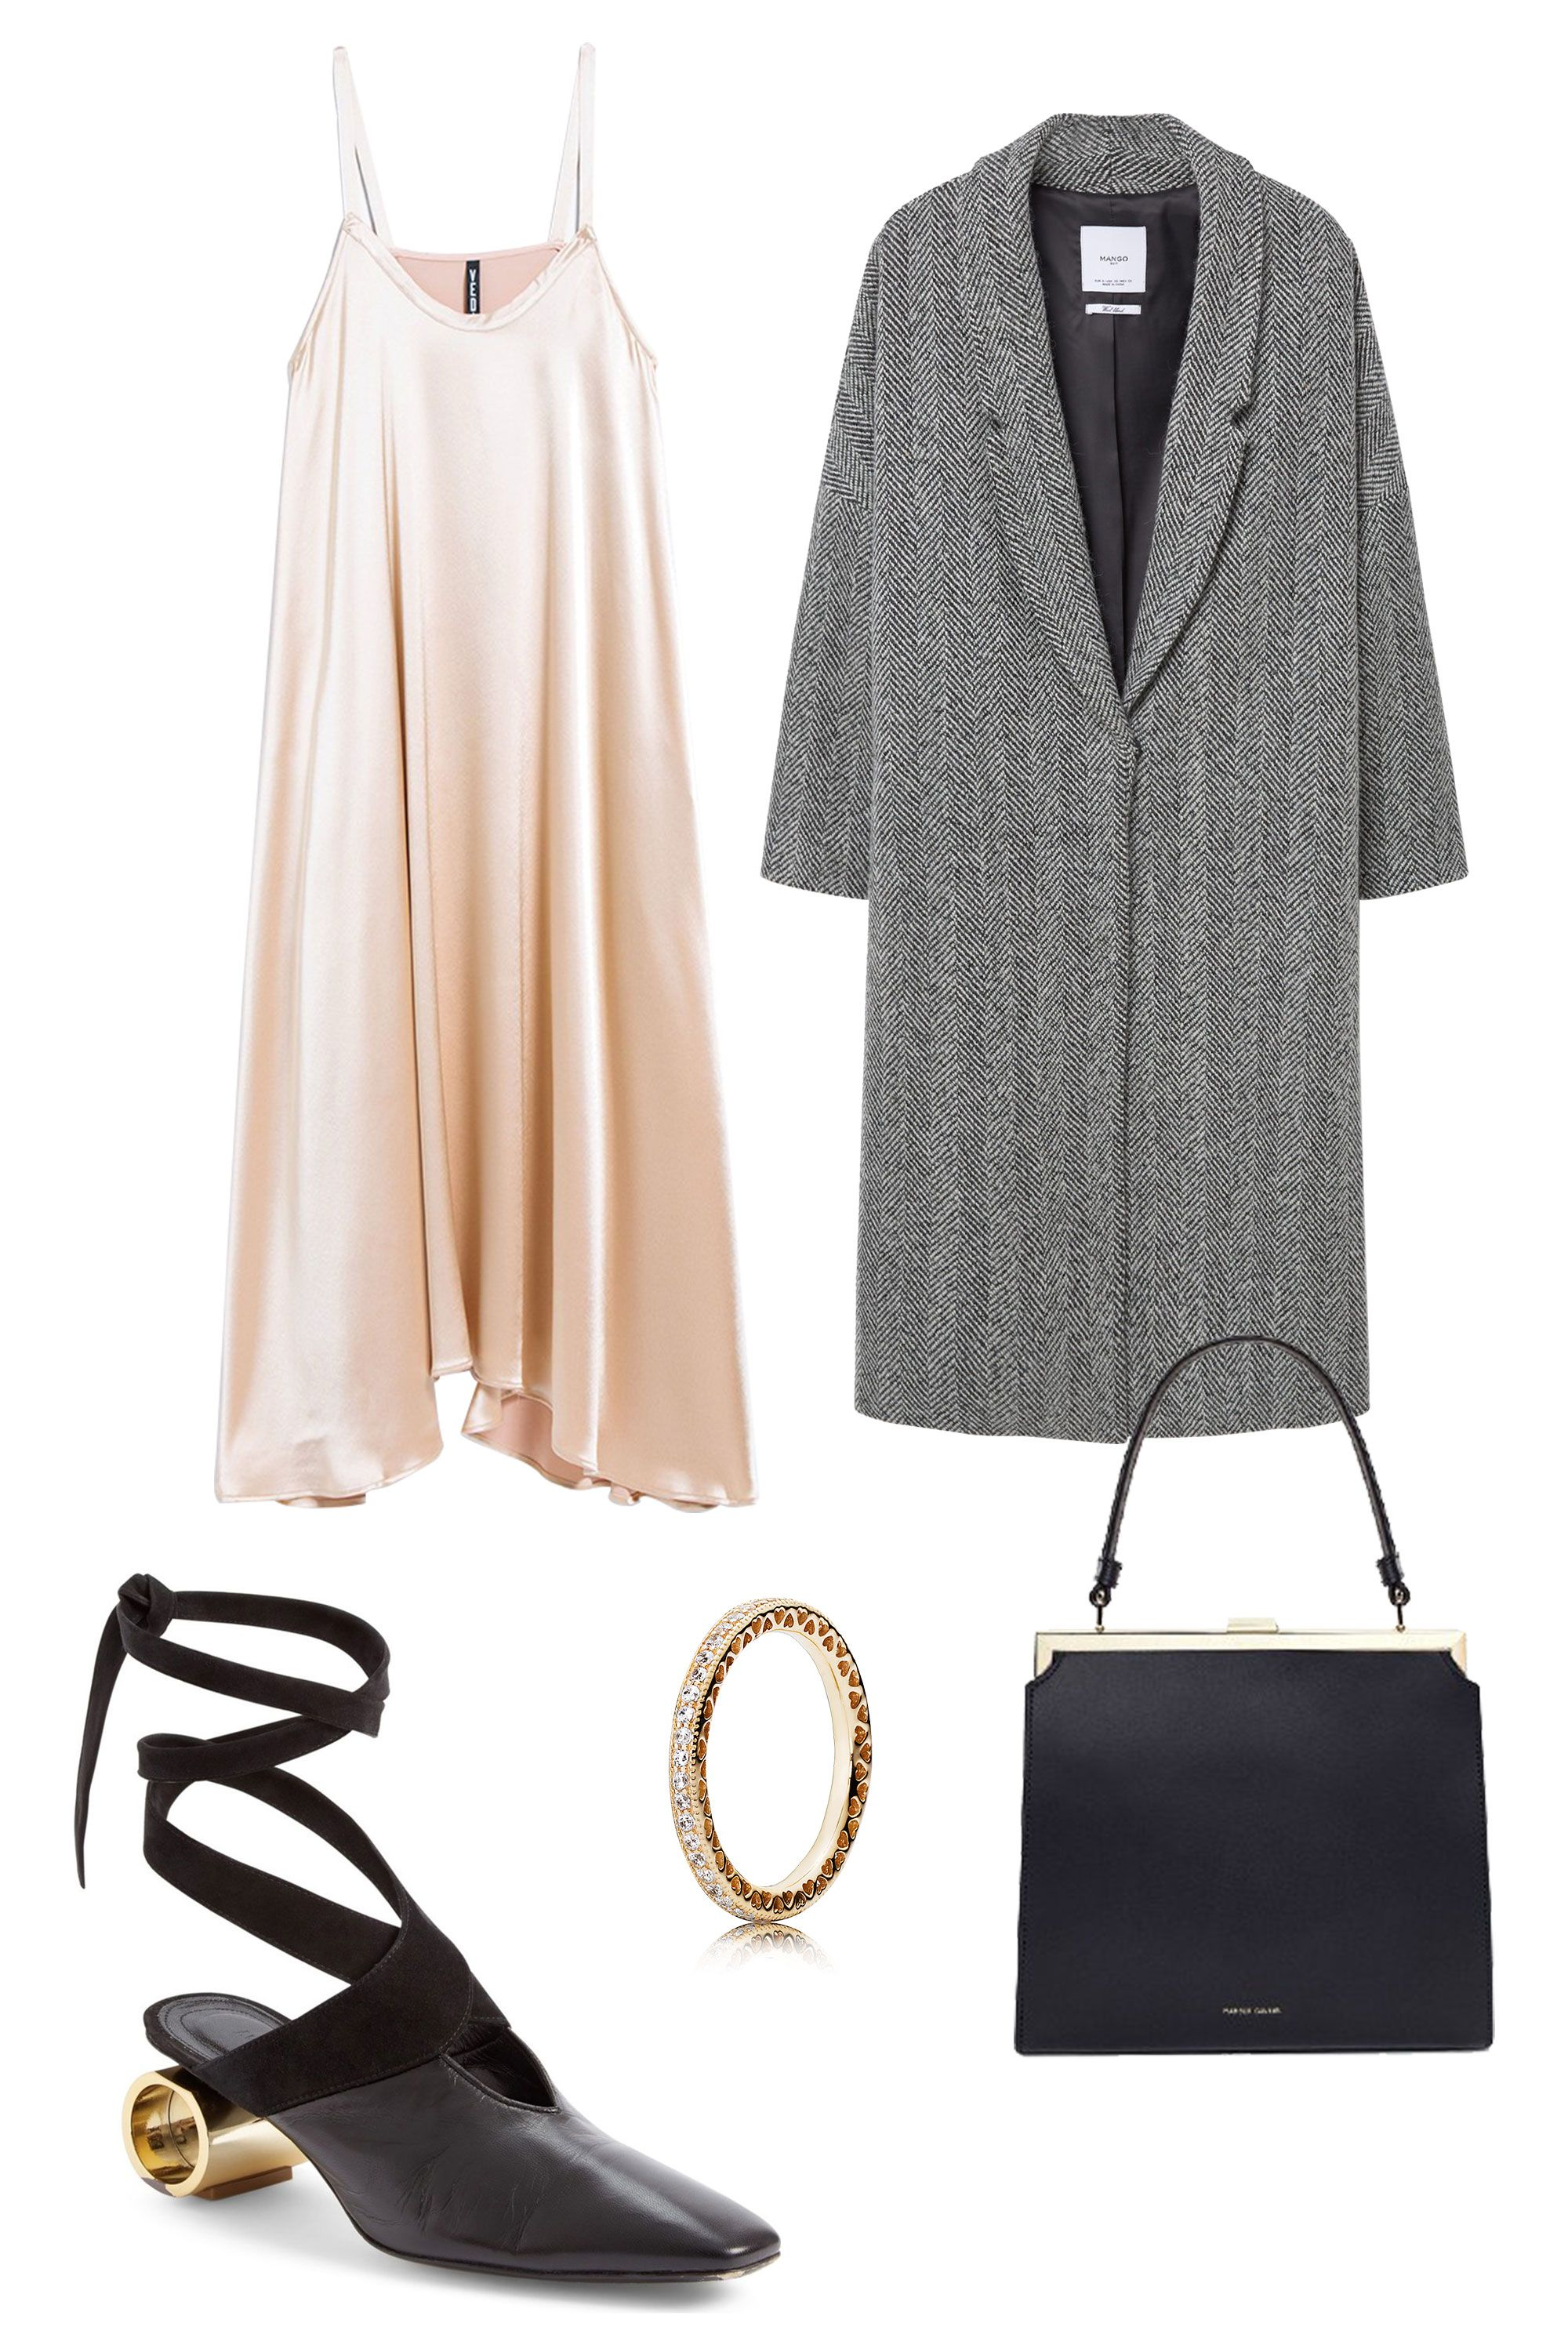 "<p>When you've got a table booked at the hottest restaurant in town, go for simple but sexy in a slinky slip dress. Add a pair of killer heels and an oversize coat and we guarantee you'll spark a little PDA. </p><p><em data-redactor-tag=""em"" data-verified=""redactor"">Veda Cleo Dress, $425, <a href=""http://needsupply.com/womens/clothing/cleo-dress.html"" target=""_blank"" data-tracking-id=""recirc-text-link"">needsupply.com</a>; Mango Herringbone Pattern Wool Coat, $150, <a href=""http://shop.mango.com/US/p0/woman/clothing/coats/coats/herringbone-pattern-wool-coat?id=73035530_99&n=1&s=prendas.abrigos"" target=""_blank"" data-tracking-id=""recirc-text-link"">mango.com</a>; Mansur Gavriel Black Elegant Bag, $750, <a href=""https://shopsuperstreet.com/collections/womens-bags/products/black-vegetable-tanned-elegant-bag"" target=""_blank"" data-tracking-id=""recirc-text-link"">shopsuperstreet.com</a>; PANDORA Jewelry Radiant Hearts 14K Gold Ring, $300, <a href=""https://estore-us.pandora.net/en-us/radiant-hearts-of-pandora-14k-gold-and-clear-cz/150186CZ.html?cid=BrndMedia_Drop7_Jan_19_2017_Elle_Esquire_CustomContent_EditorialPost_14KGoldofPAndoraRing_Rings_PDP_150186CZ_Product Radiant Hearts_Earrings_PDP_150186CZ_Product"" target=""_blank"" data-tracking-id=""recirc-text-link"">pandora.net</a>; J.W. Anderson Cylinder Heel Ballet Slide, $1,050, <a href=""http://shop.nordstrom.com/s/j-w-anderson-cylinder-heel-ballet-slide-women/4496990?origin=category-personalizedsort"" target=""_blank"" data-tracking-id=""recirc-text-link"">nordstrom.com</a></em></p>"